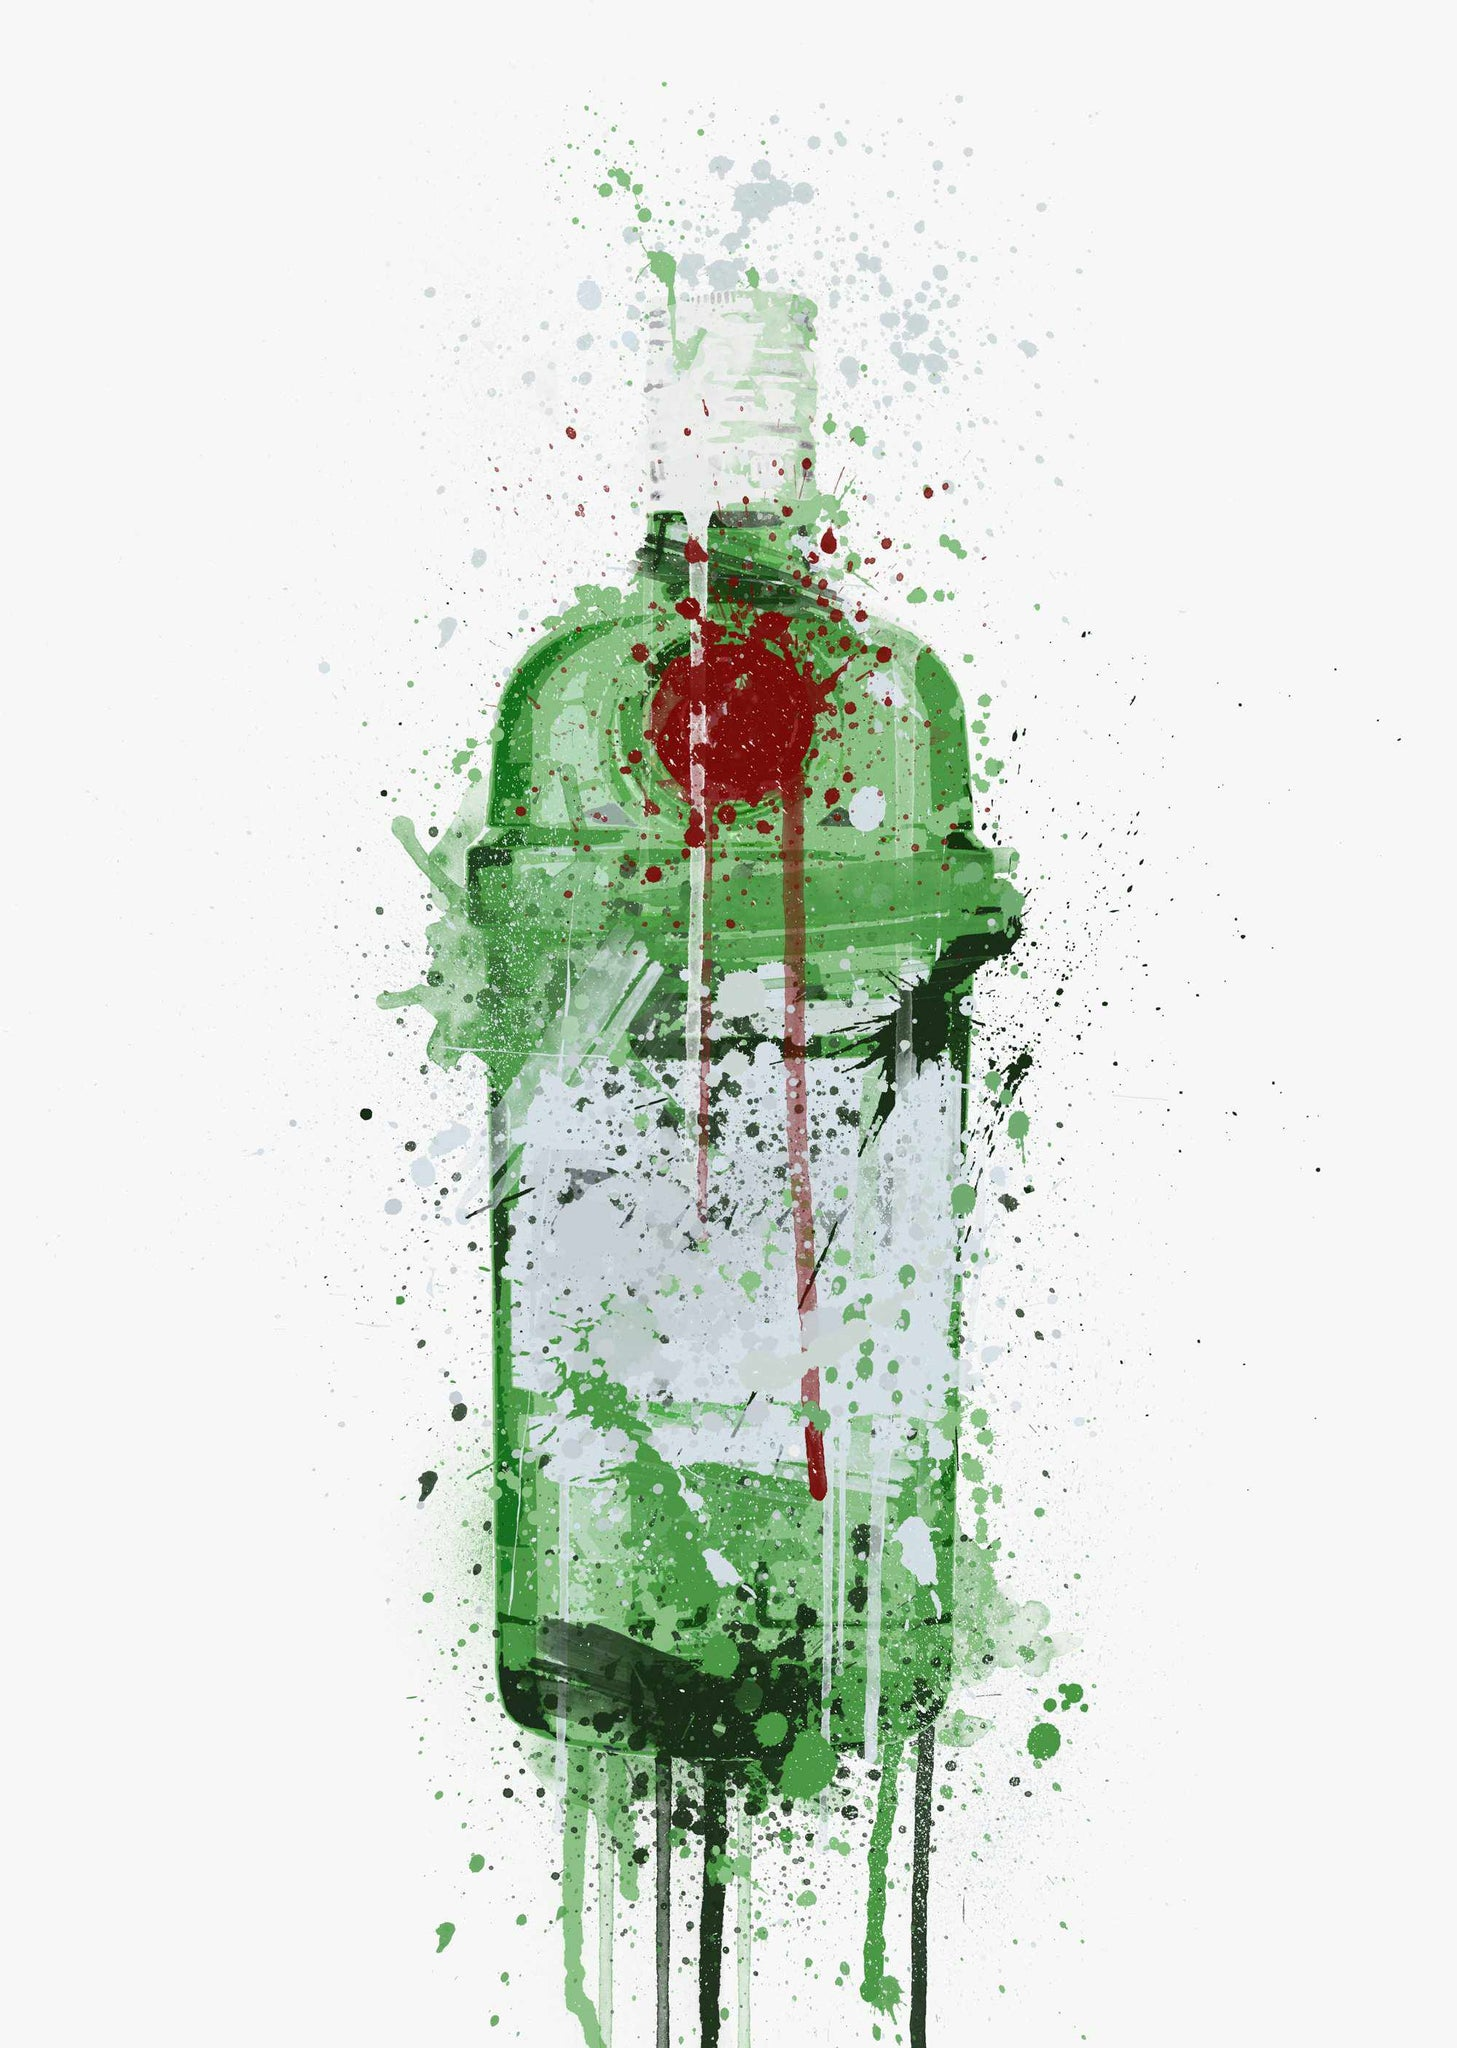 Gin Bottle Wall Art Print 'Emerald'